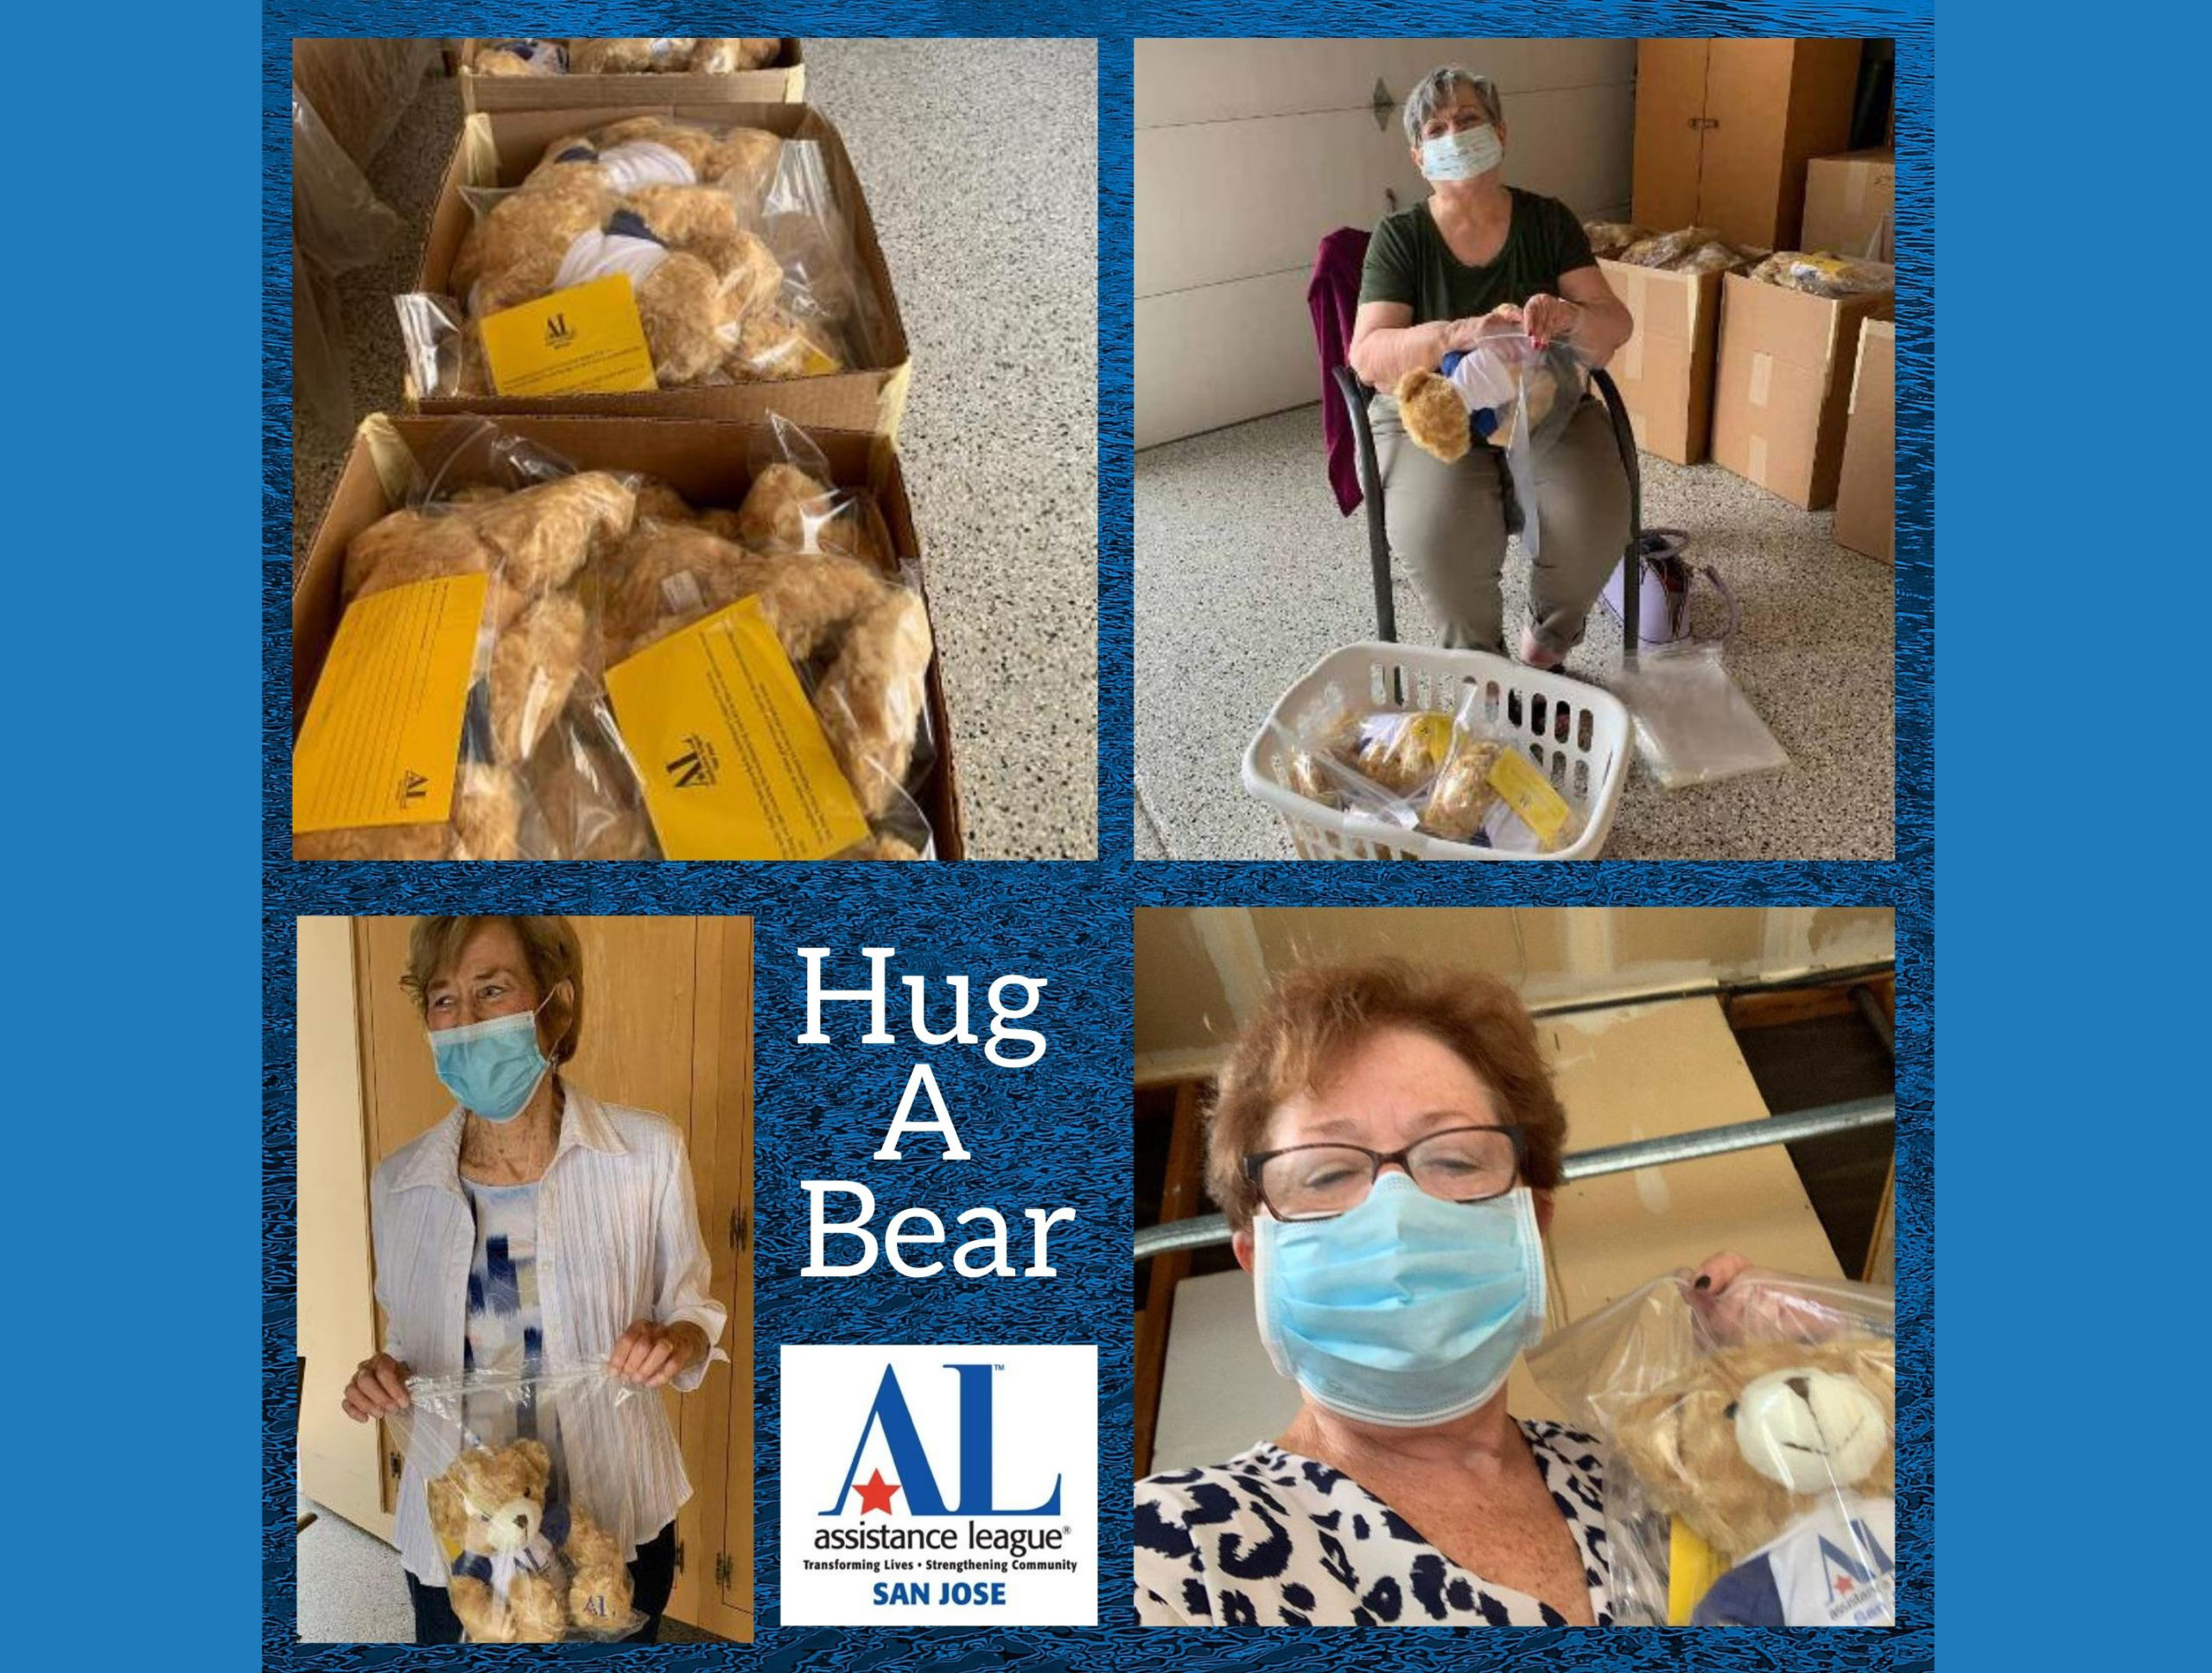 Hug-a-Bear volunteers packing for a delivery